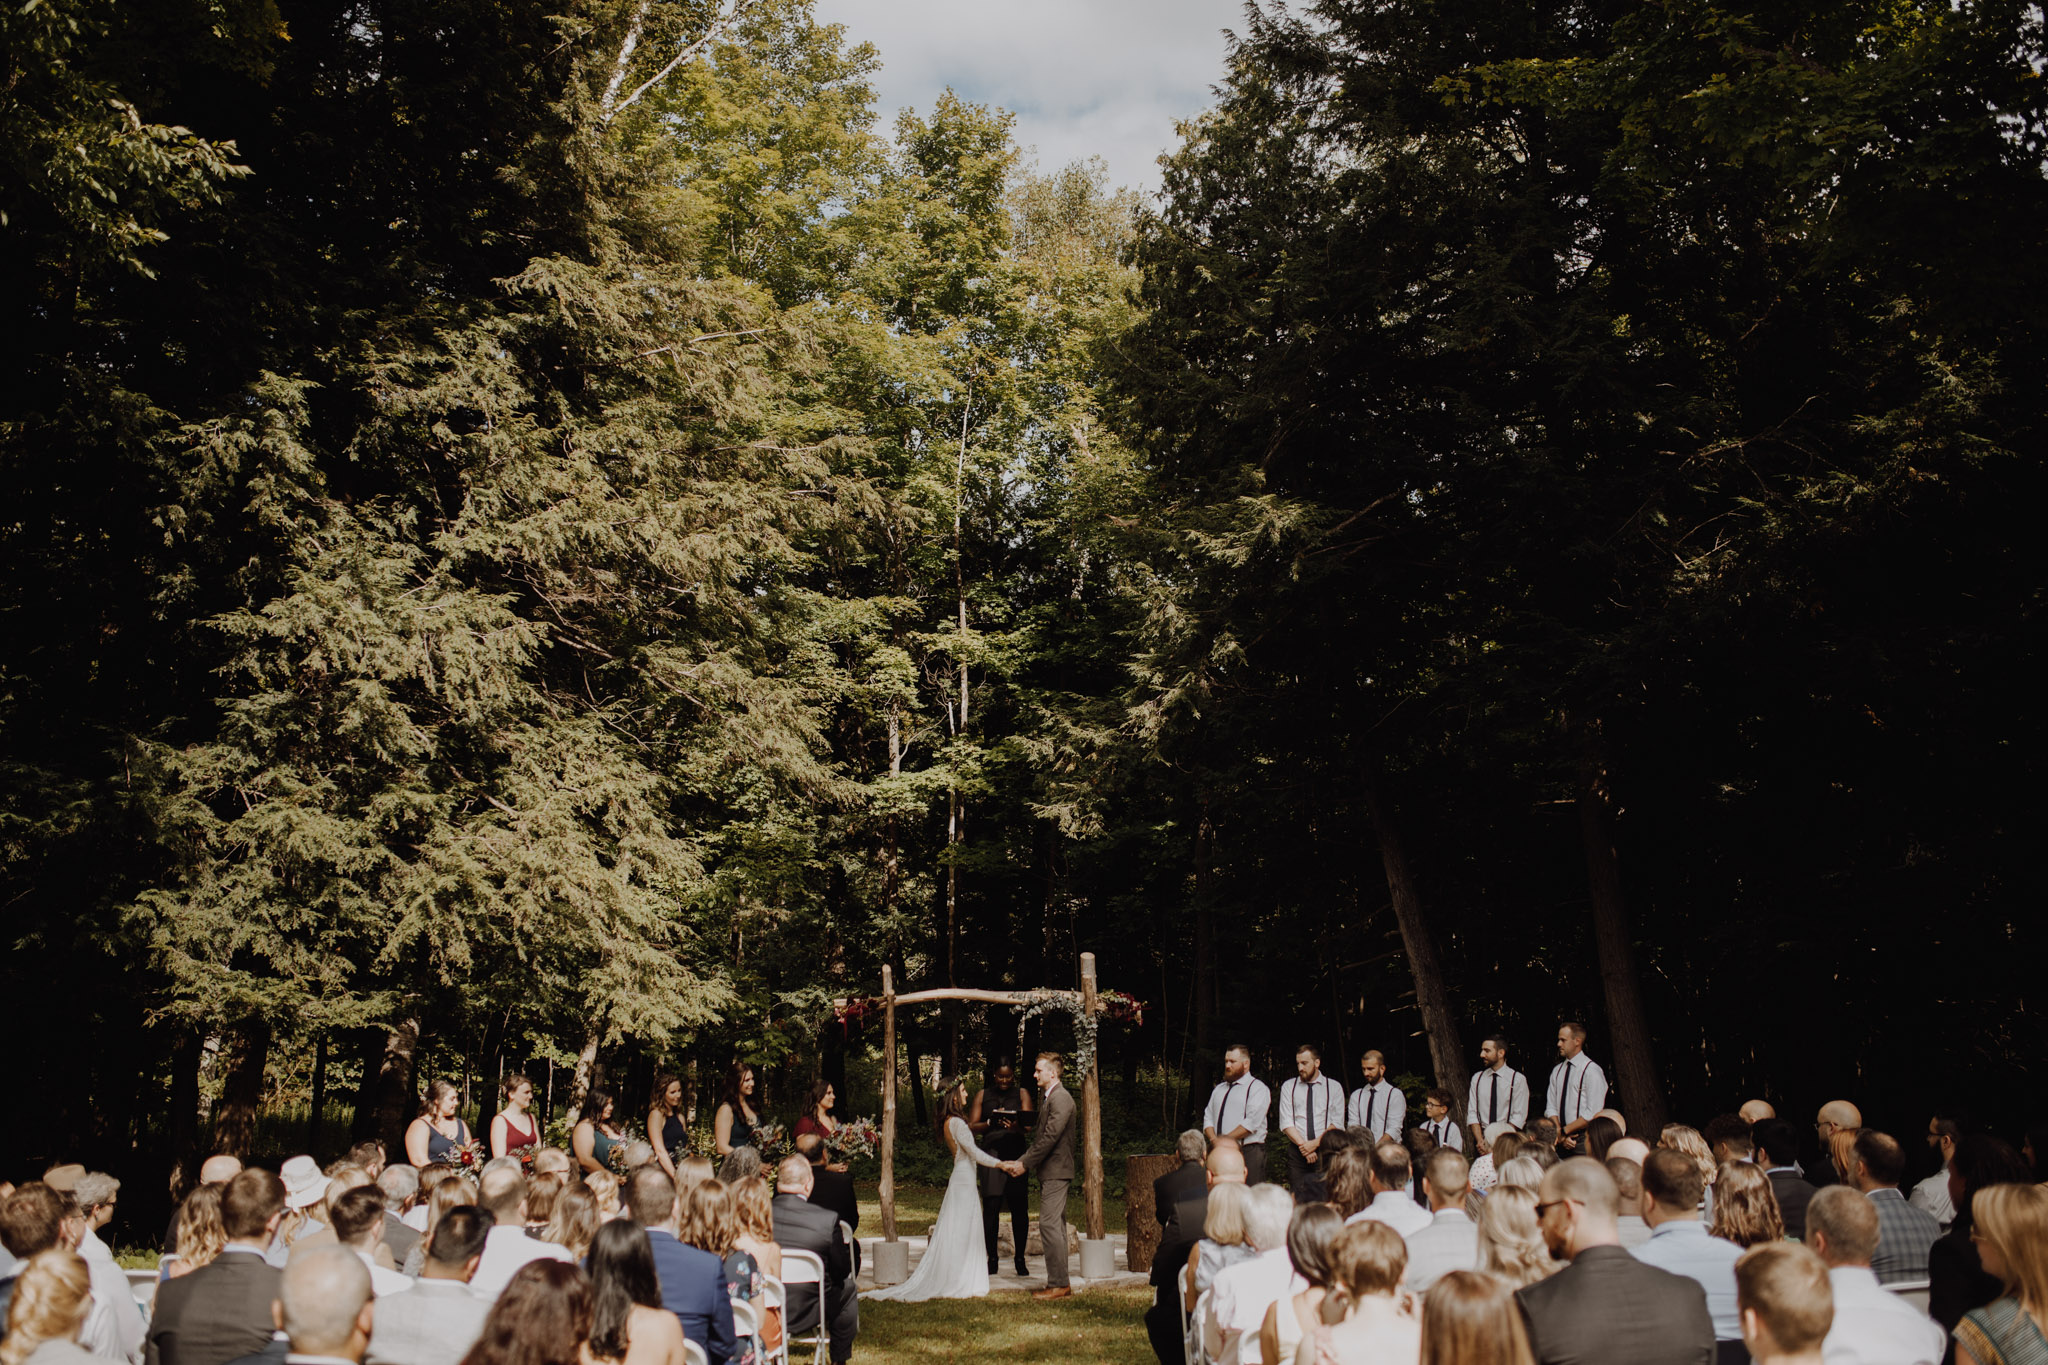 Outdoor Camp Wedding - bride and groom at the alter